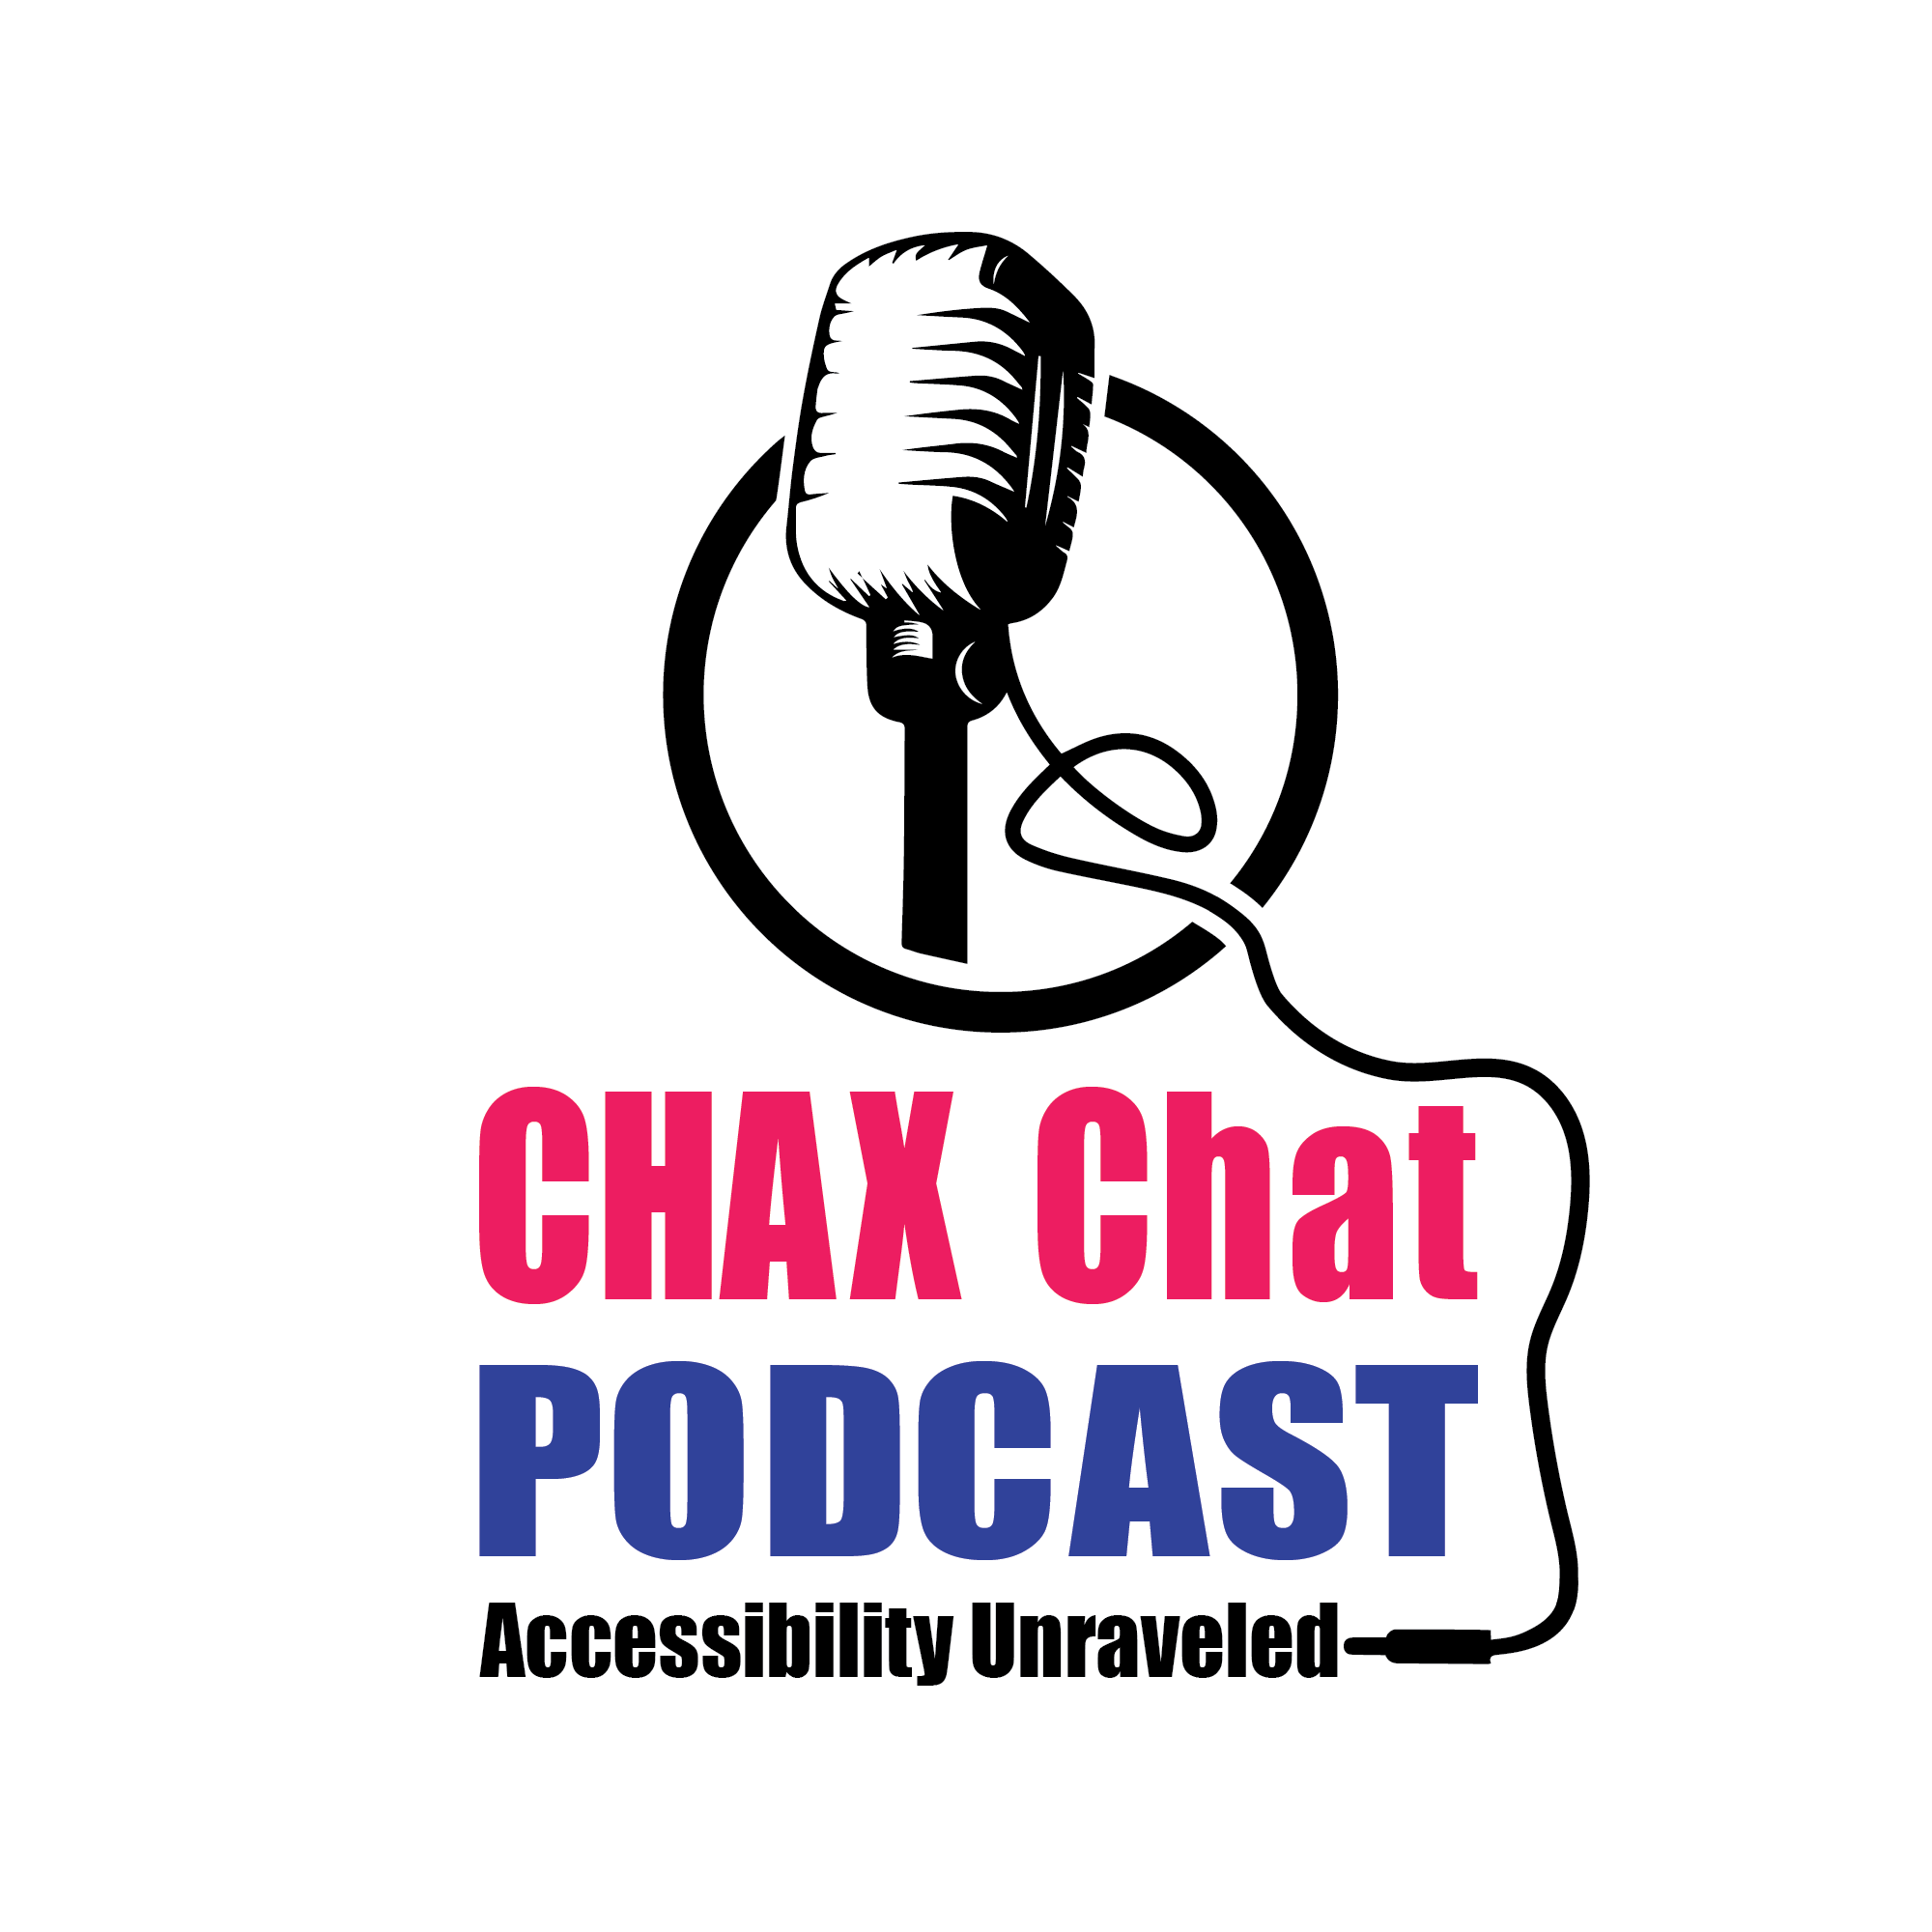 A11y Podcast